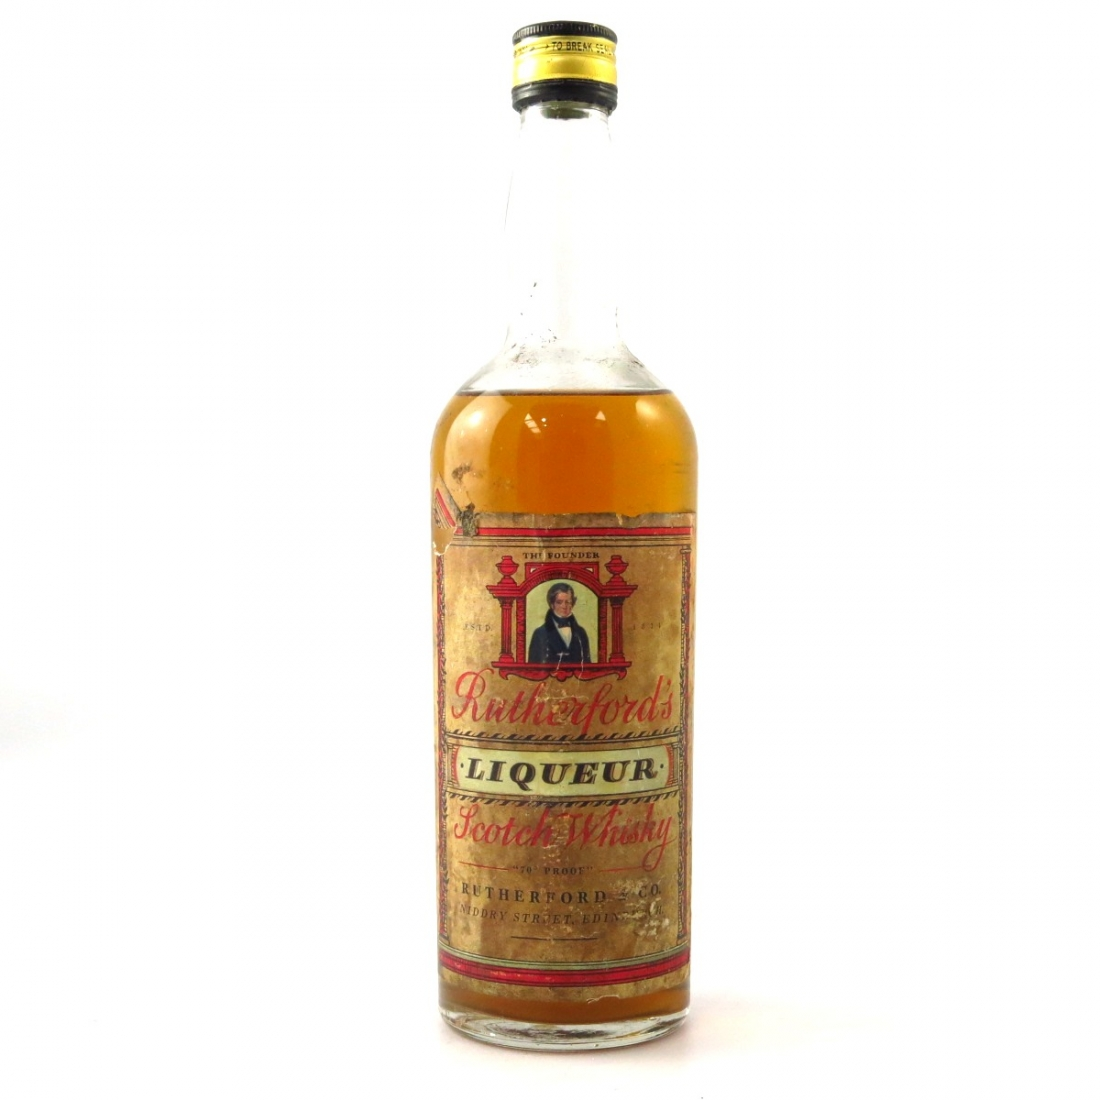 Rutherford's Liqueur Scotch 1960s